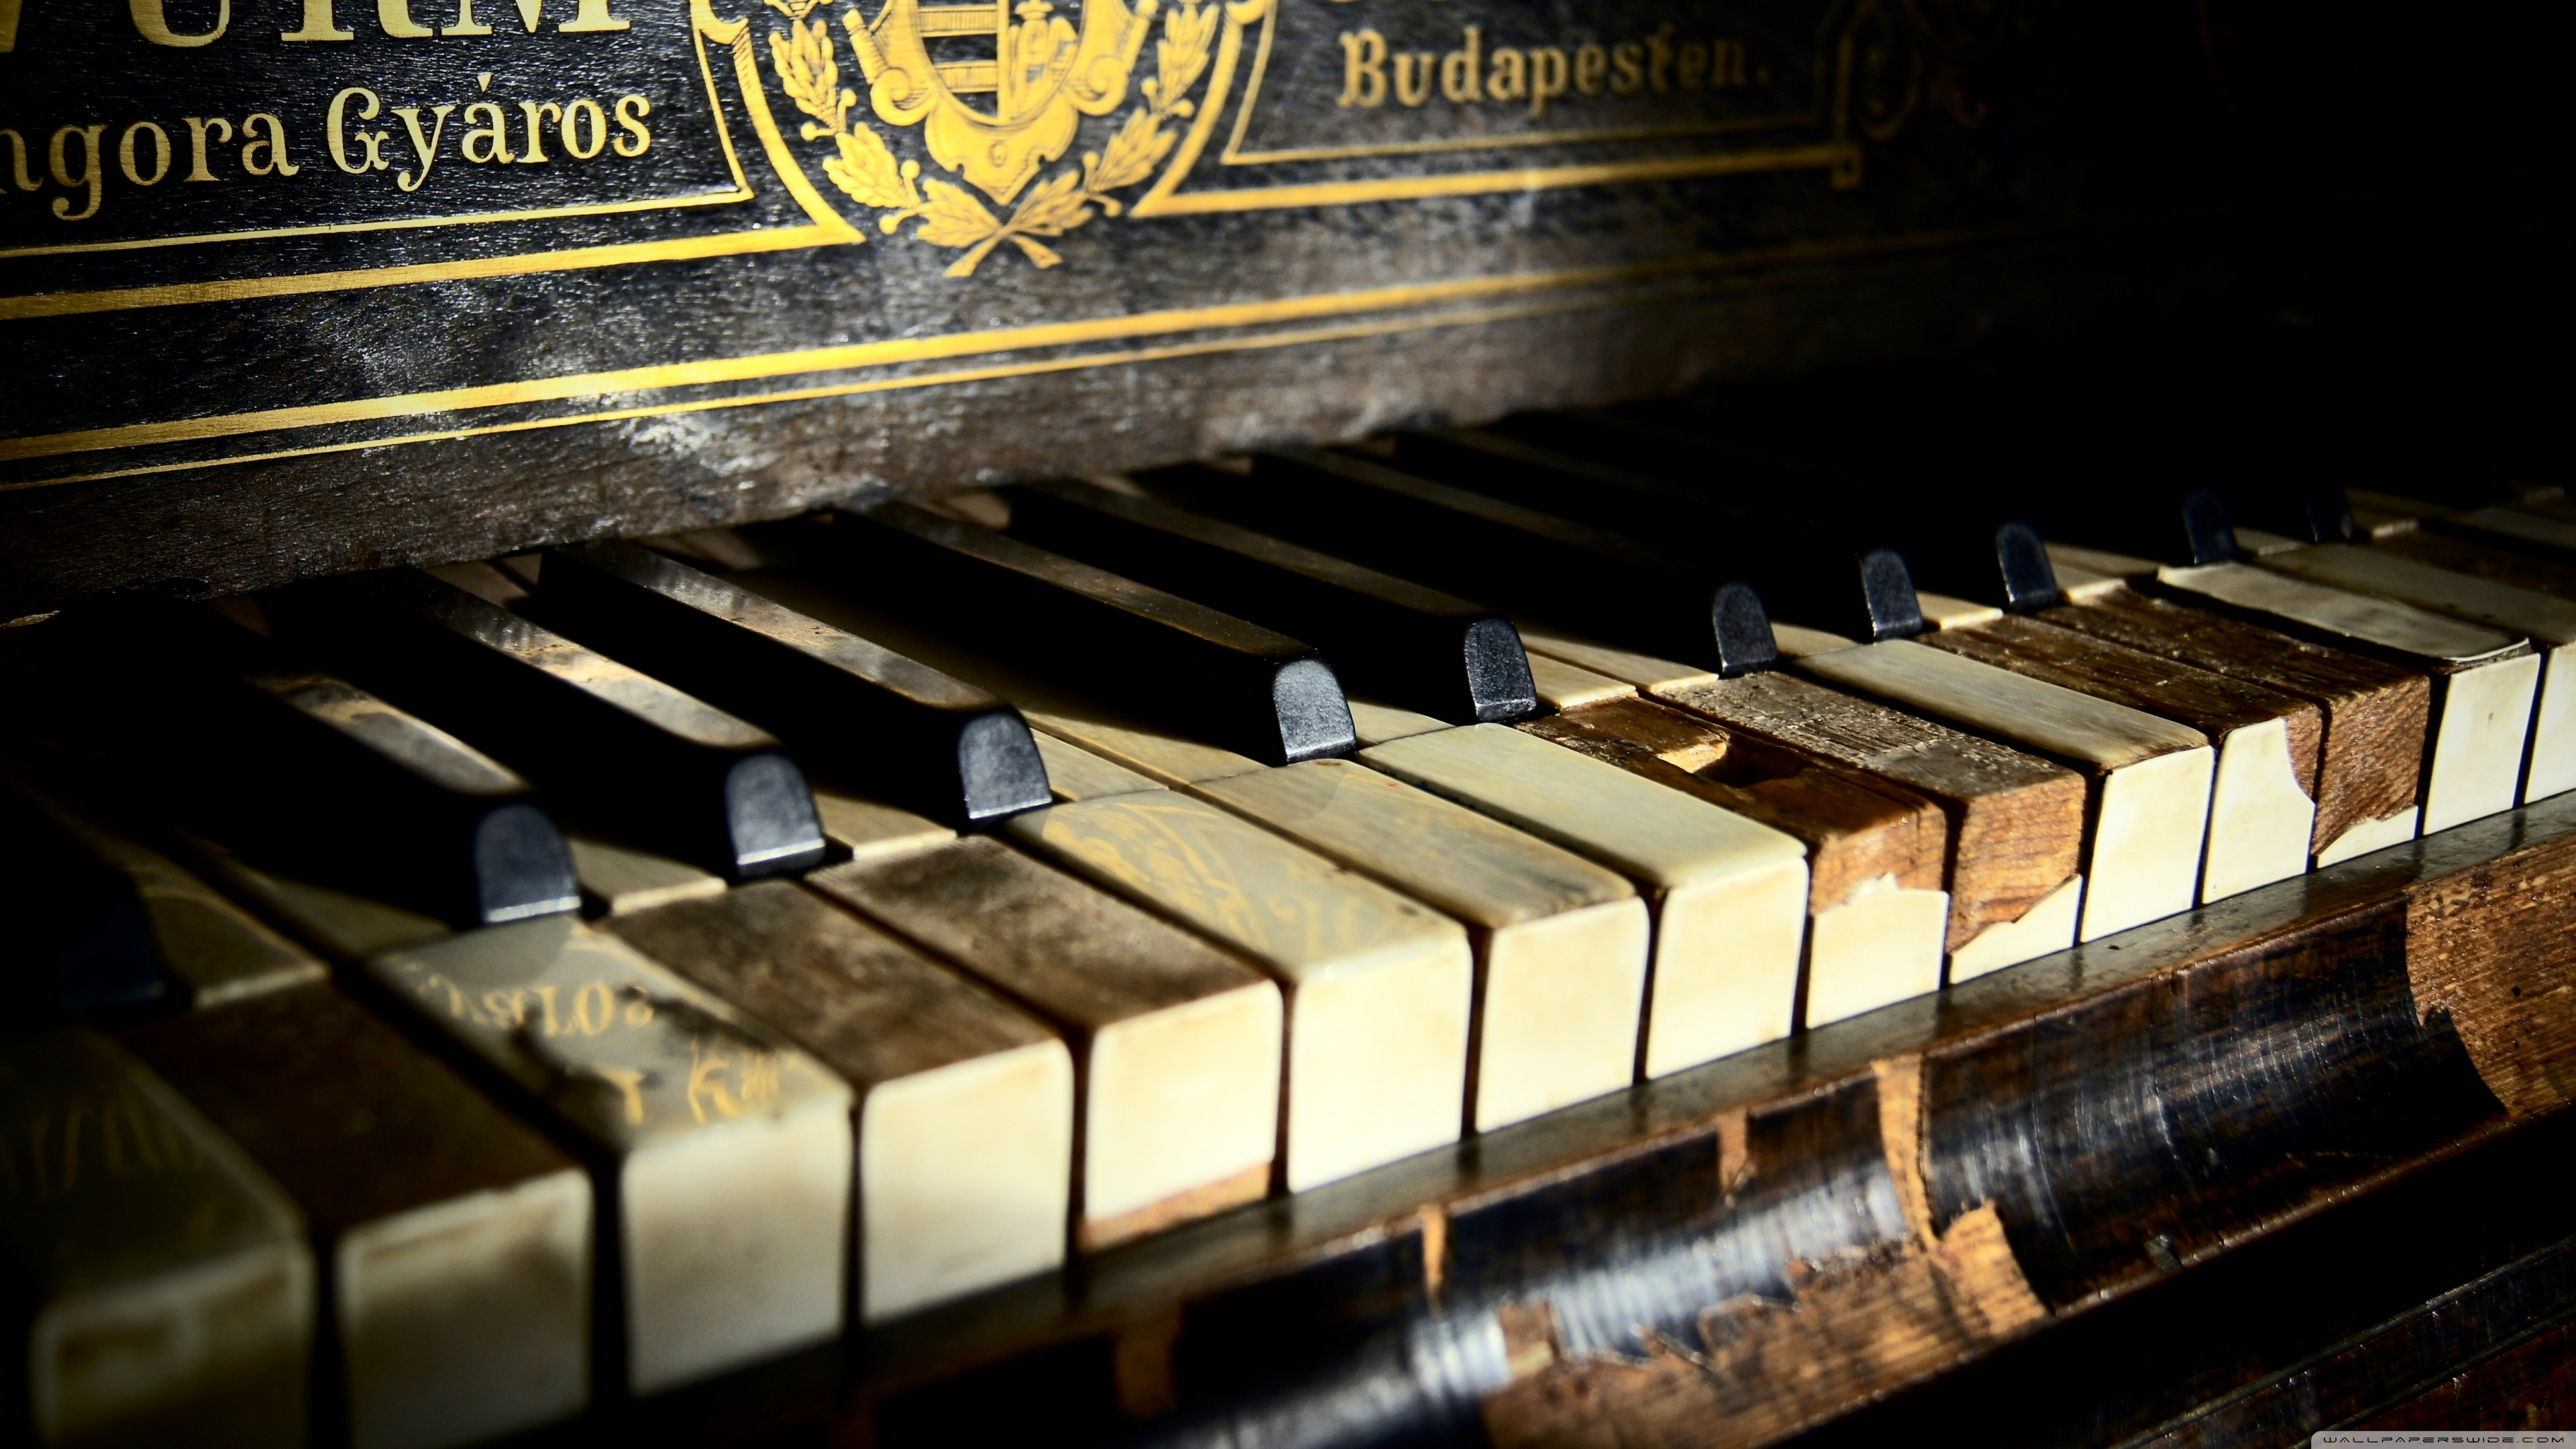 photo old piano - photo #28